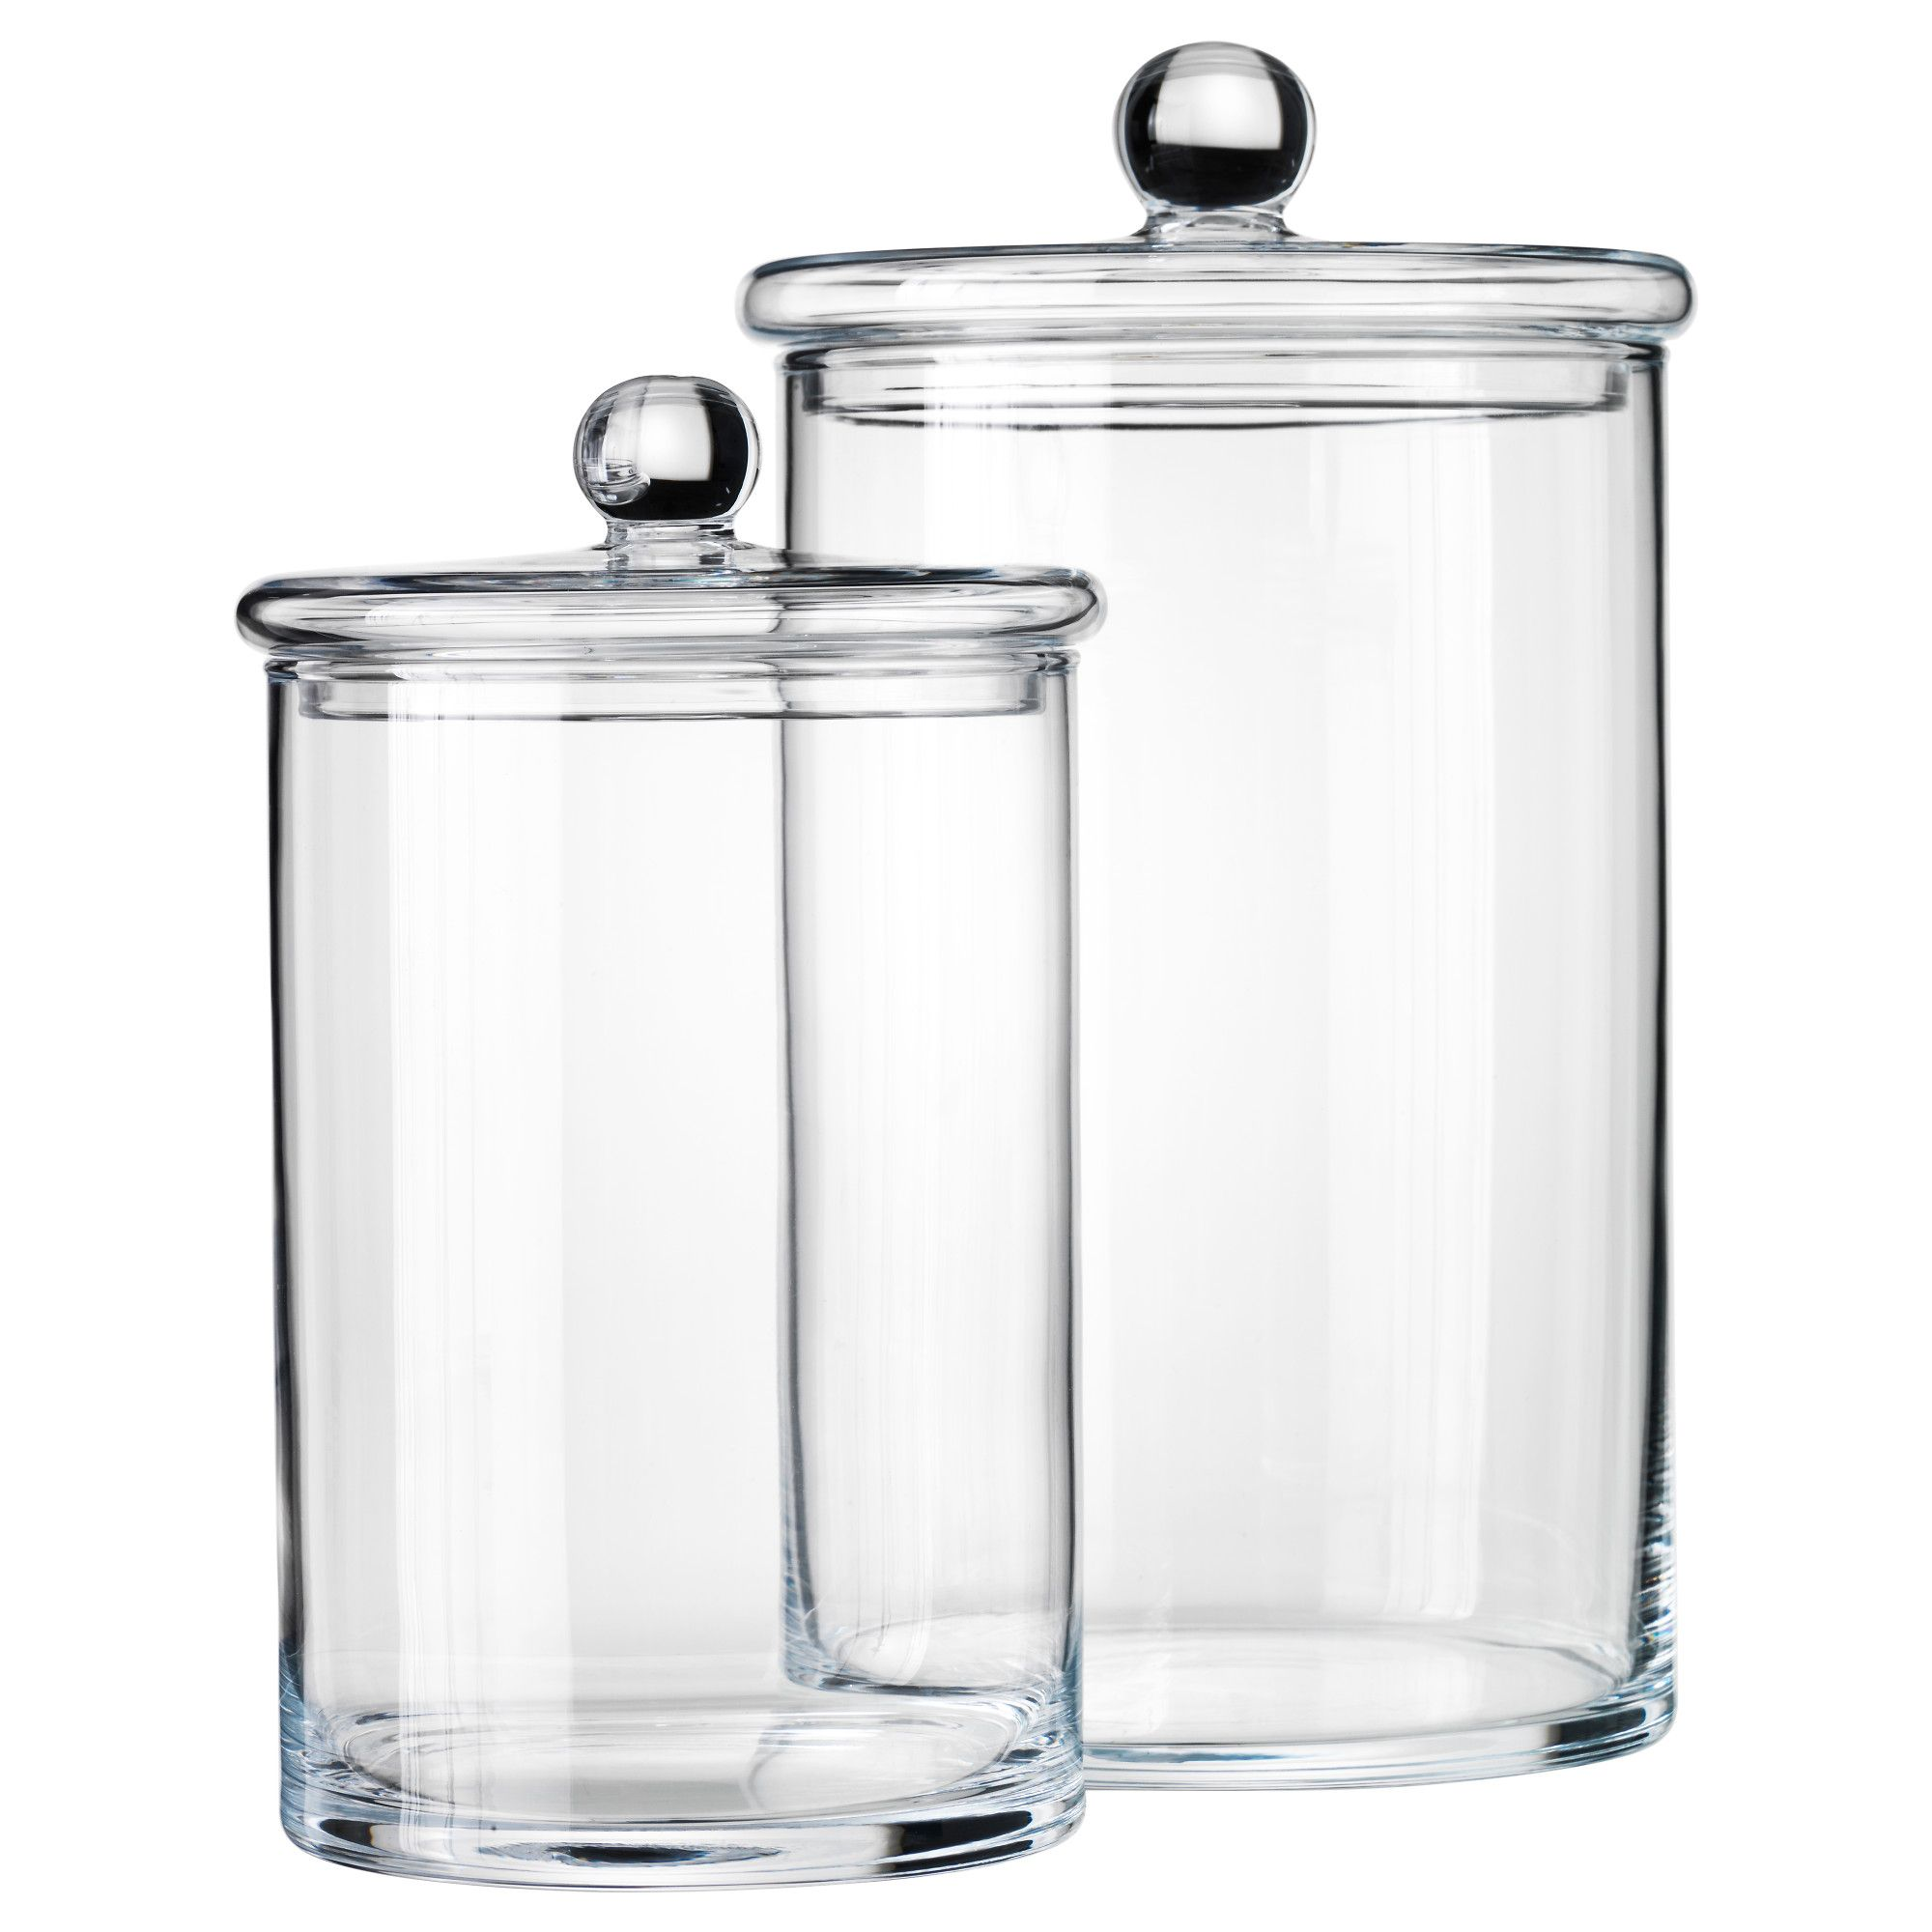 Black Kitchen Storage Jars 17 Best Images About Ikea Wants On Pinterest Shelves Ikea Ps Ikea